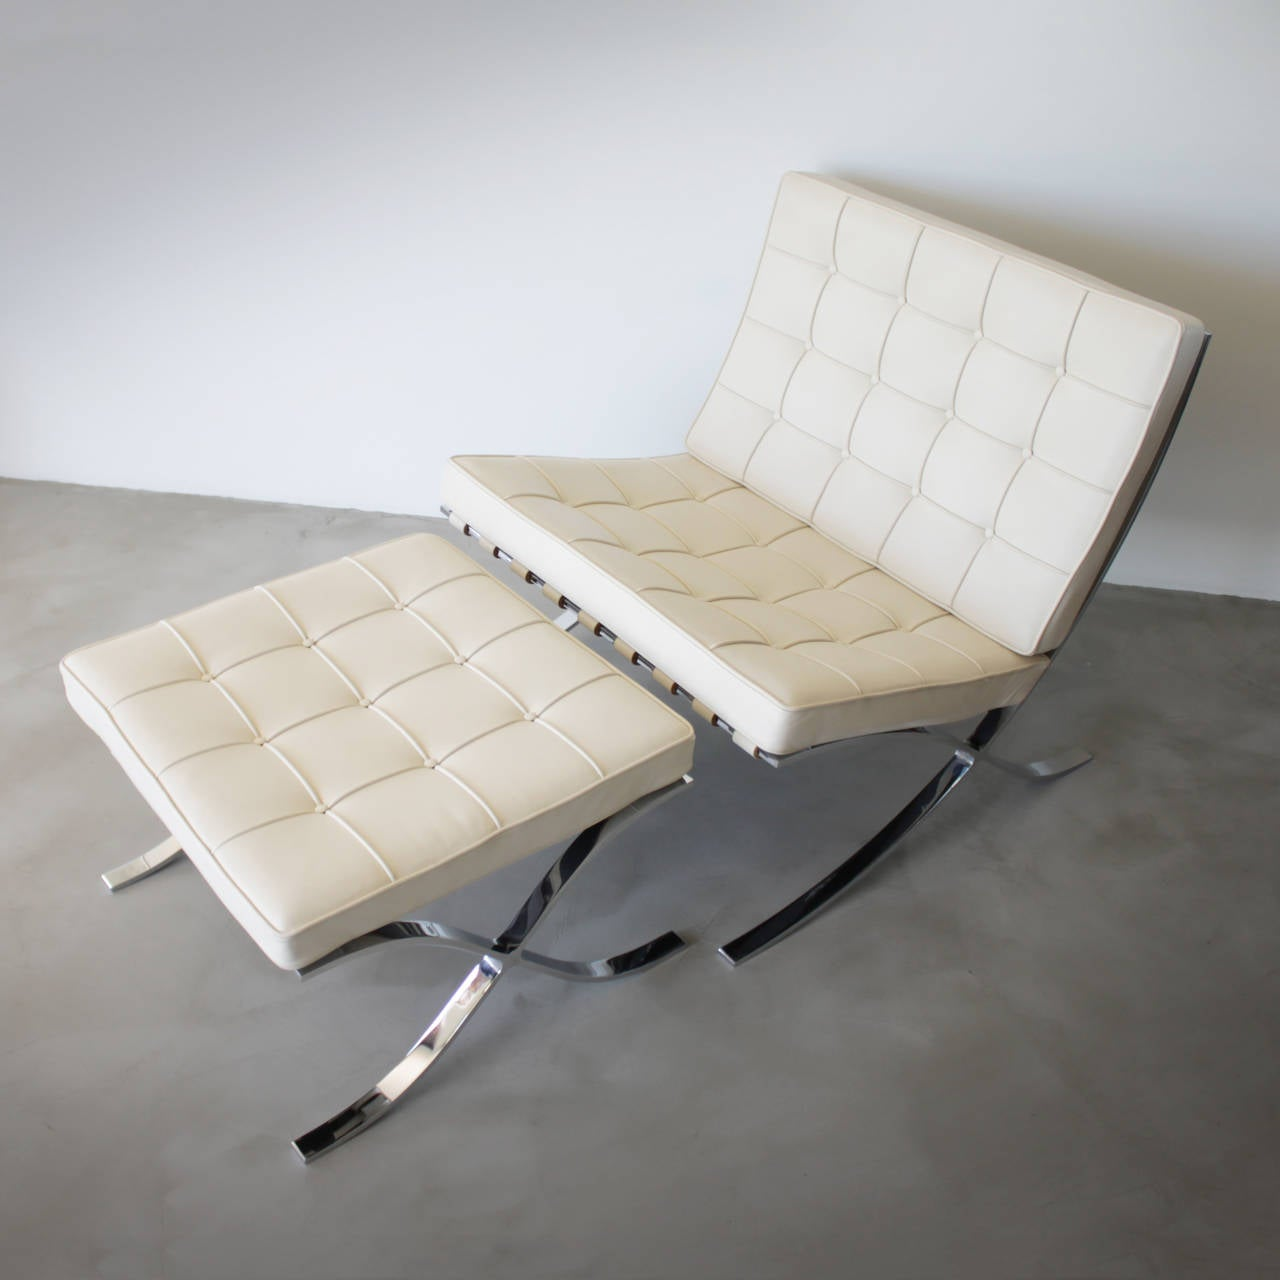 Barcelona Lounge Chair Barcelona With Stool By Mies Van Der Rohe For Knoll At 1stdibs